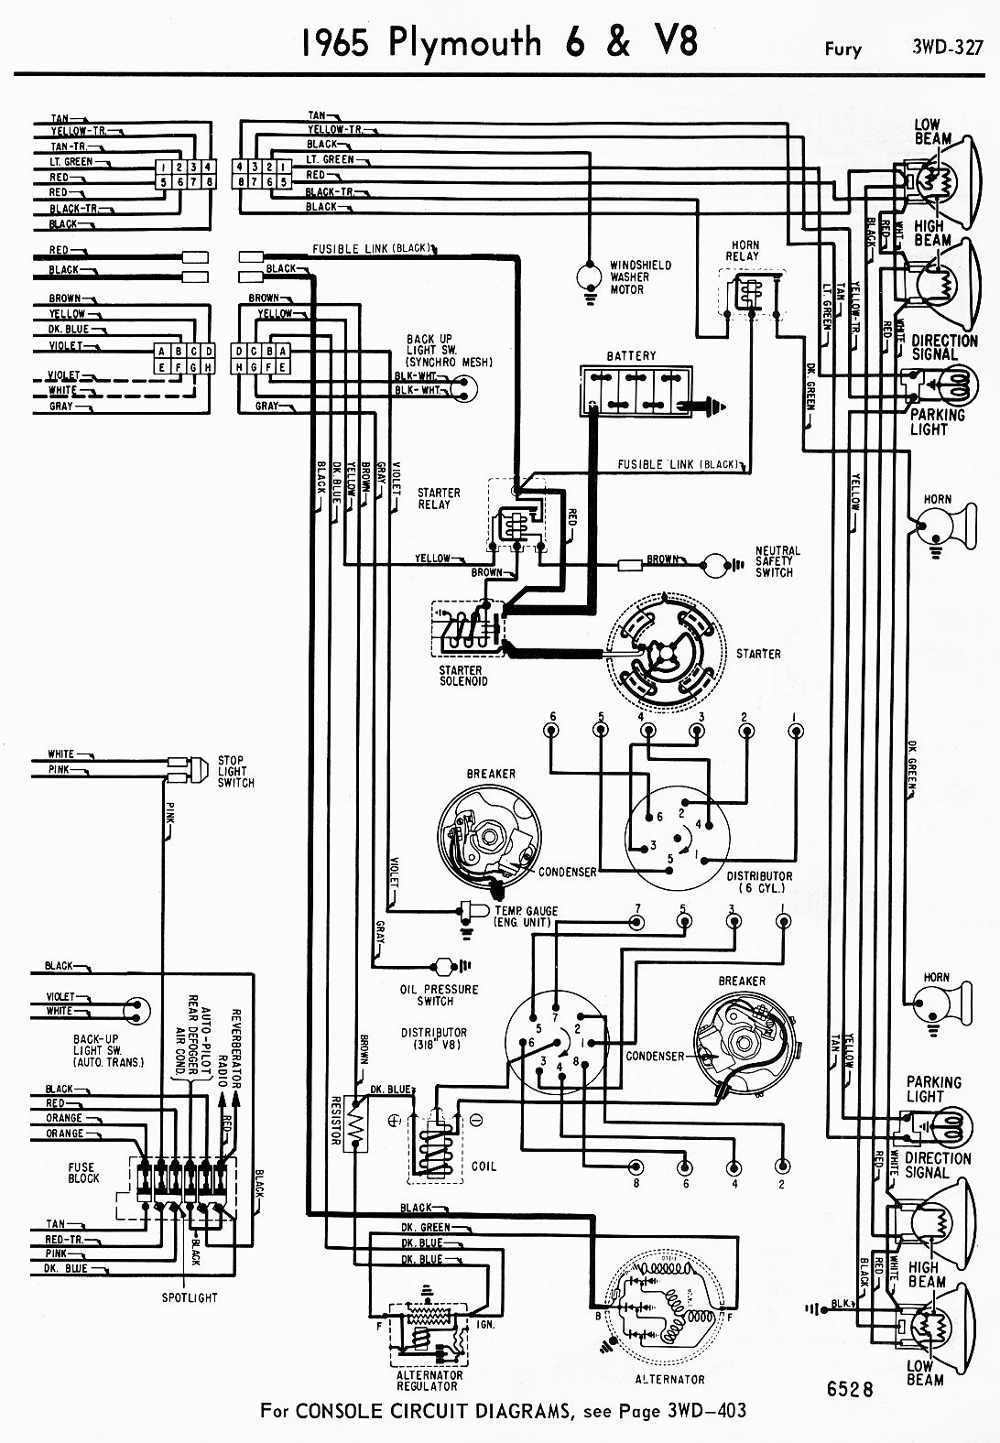 wiring diagrams of 1965 plymouth 6 and v8 fury part 2?t\=1508746003 1990 plymouth laser wiring diagram wiring diagram simonand Lincoln HD Wiring-Diagram at soozxer.org